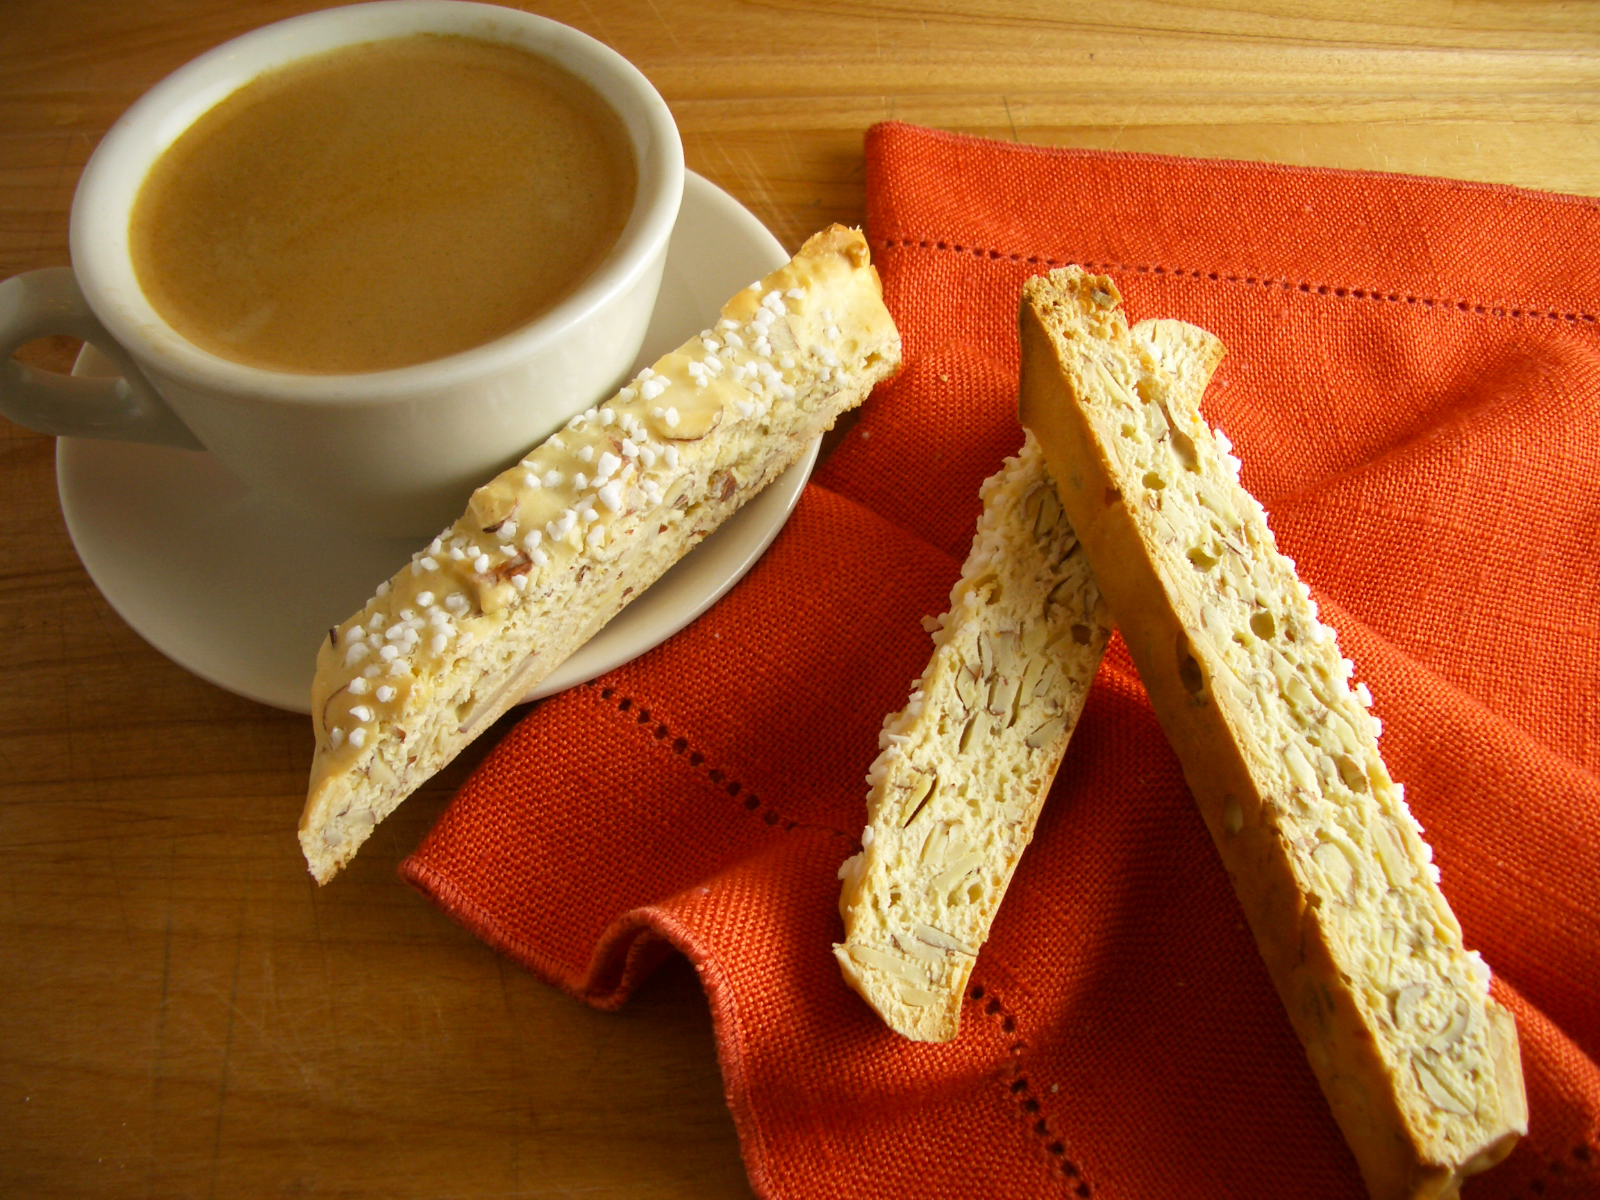 Goodies by Anna: Lemon Almond Biscotti